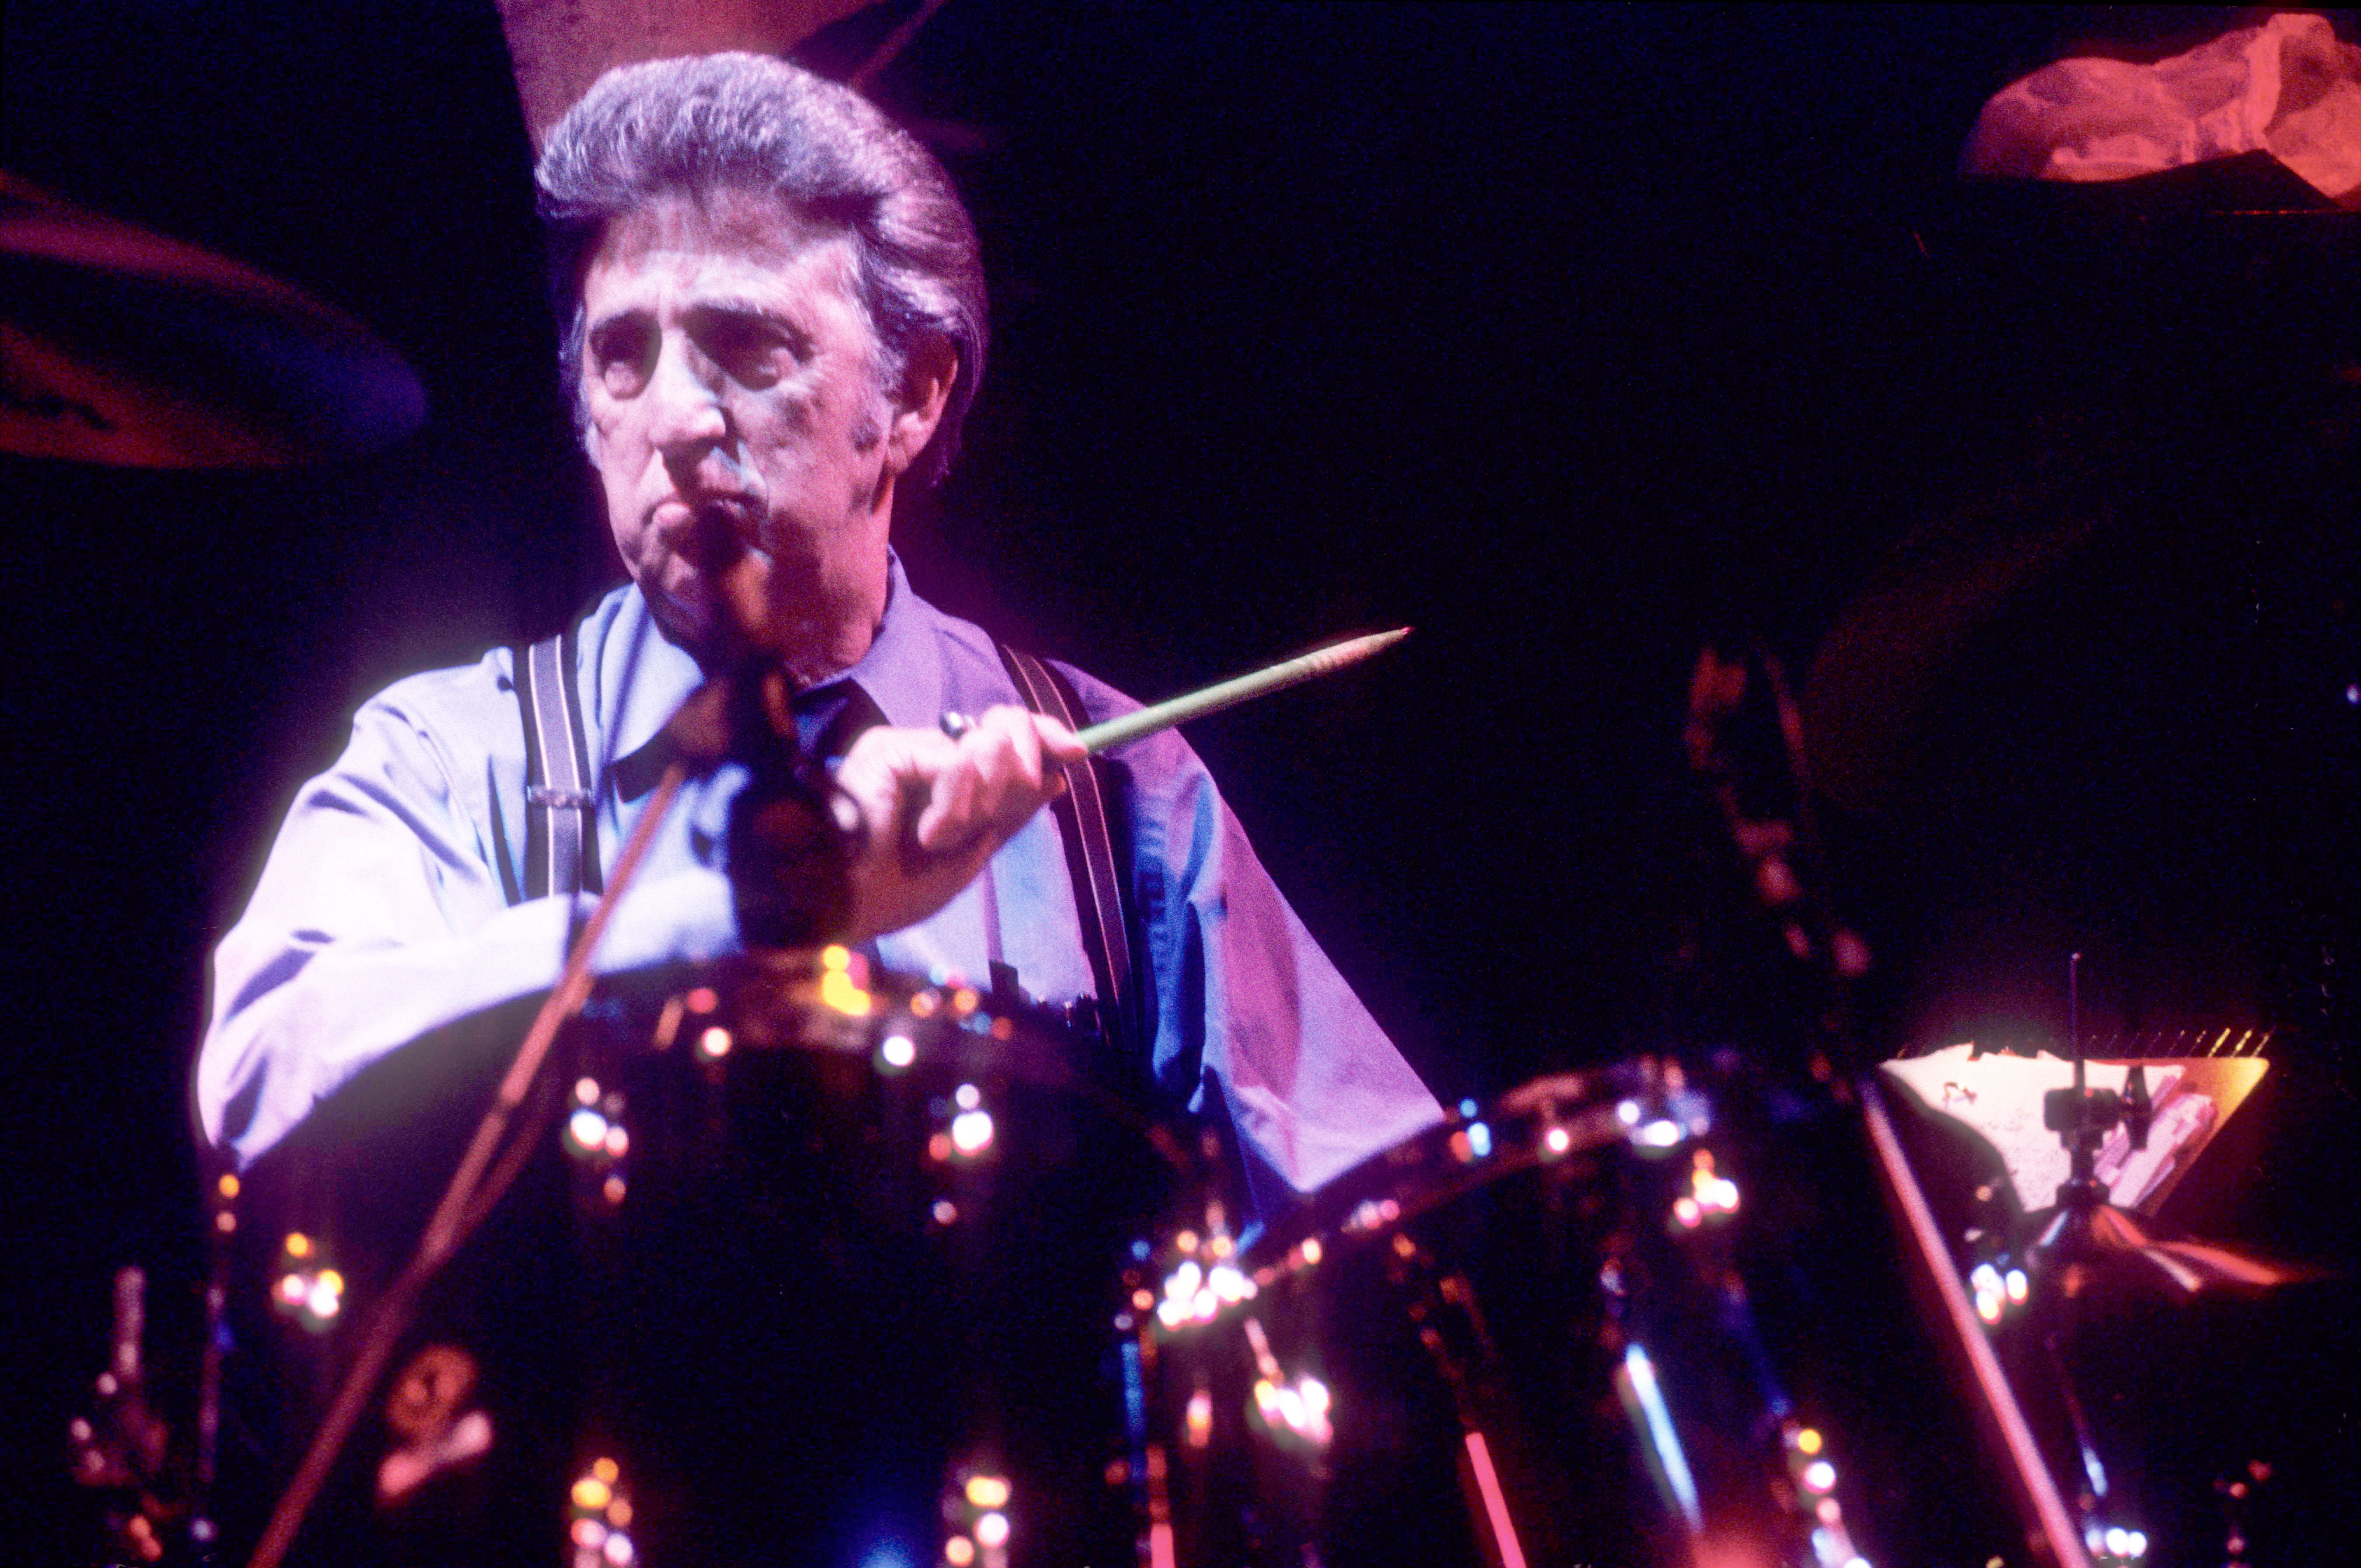 Elvis Presley Drummer Dj Fontana Dead At 87 Rolling Stone Dont Know If All Drum Switches Are The Same Maybe They